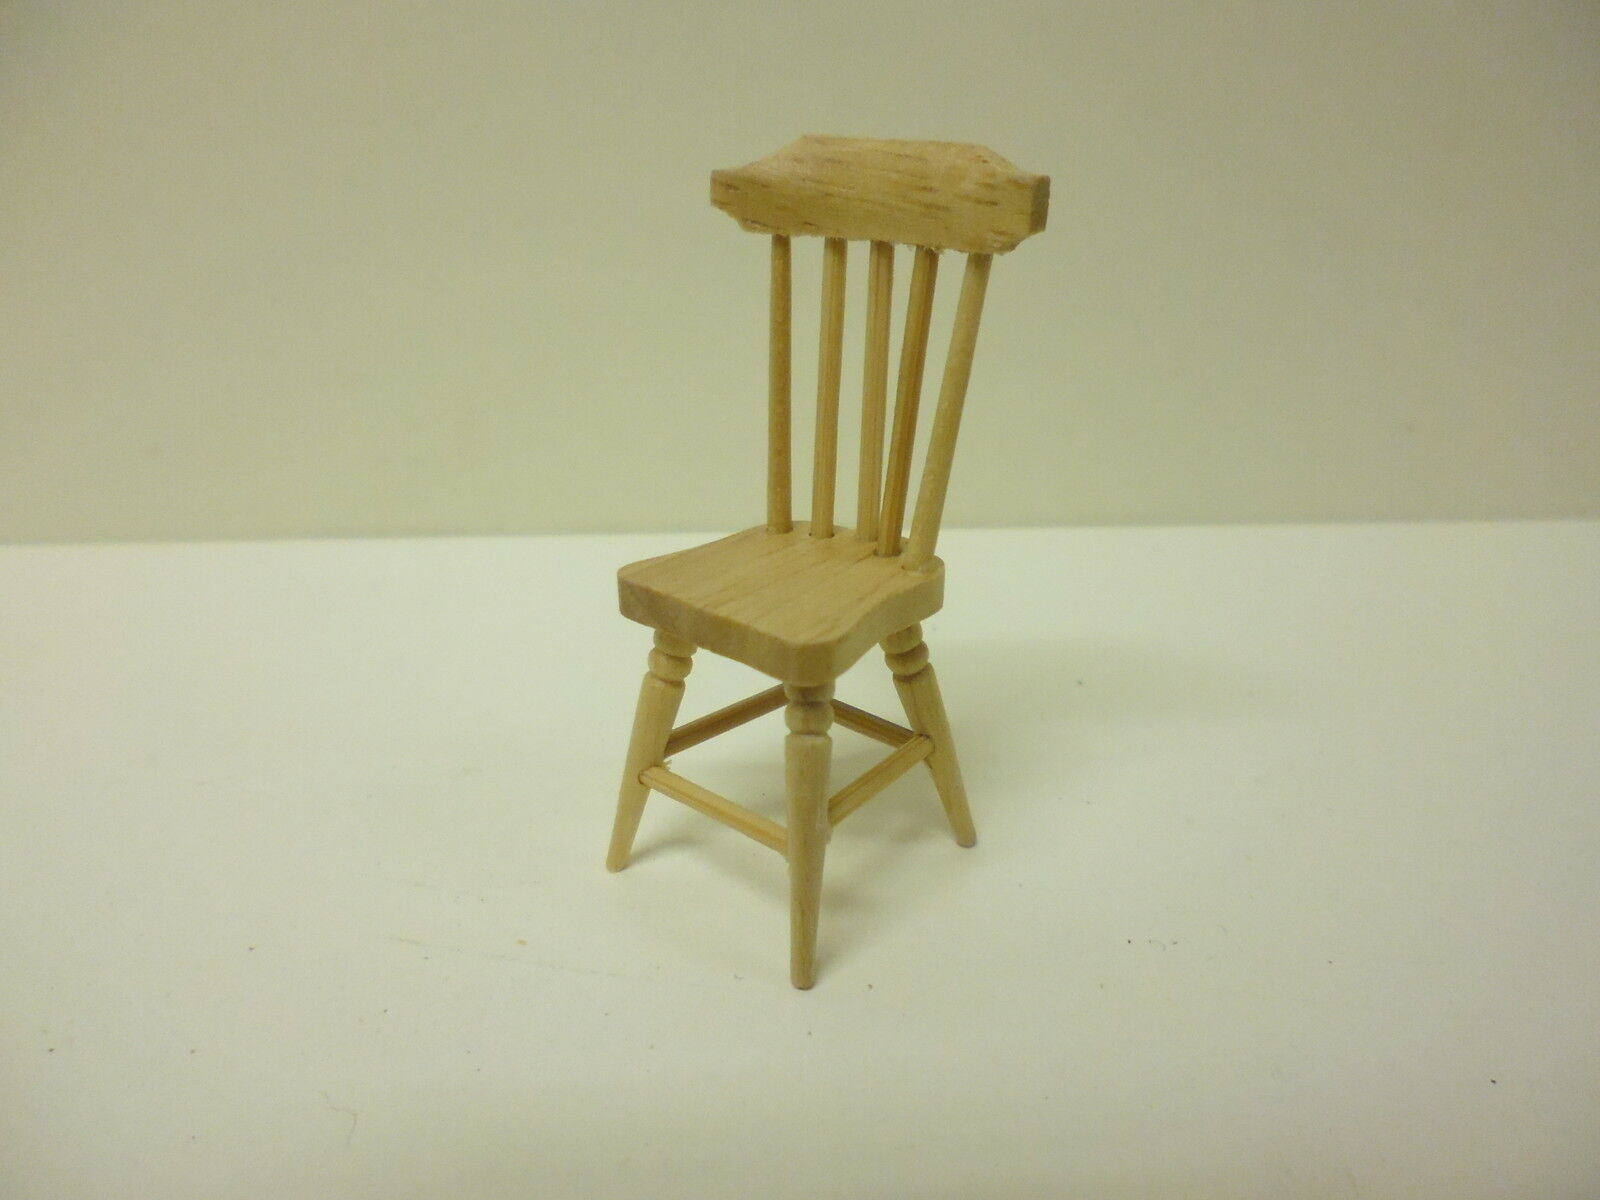 pine kitchen chairs dental saddle chair quality 1 24th scale dolls house furniture